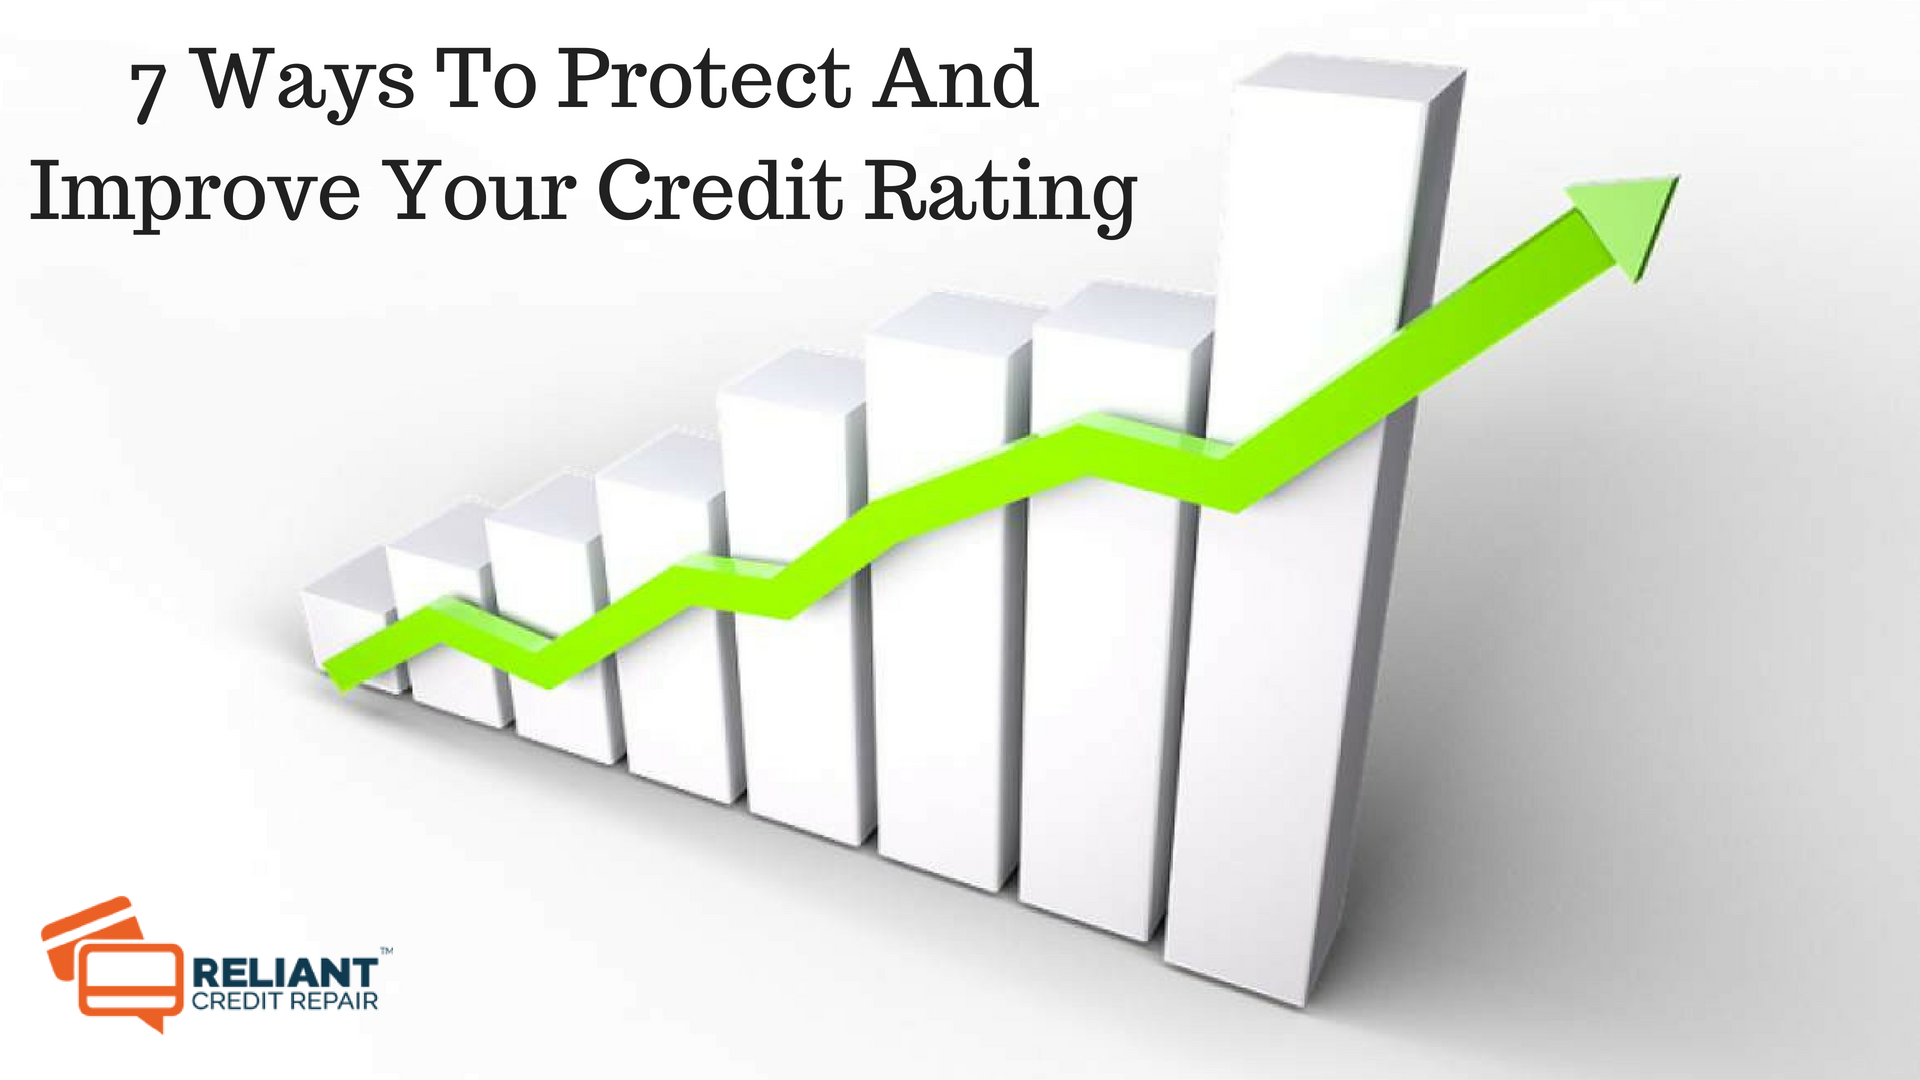 7-Ways-To-Protect-And-Improve-Your-Credit-Rating